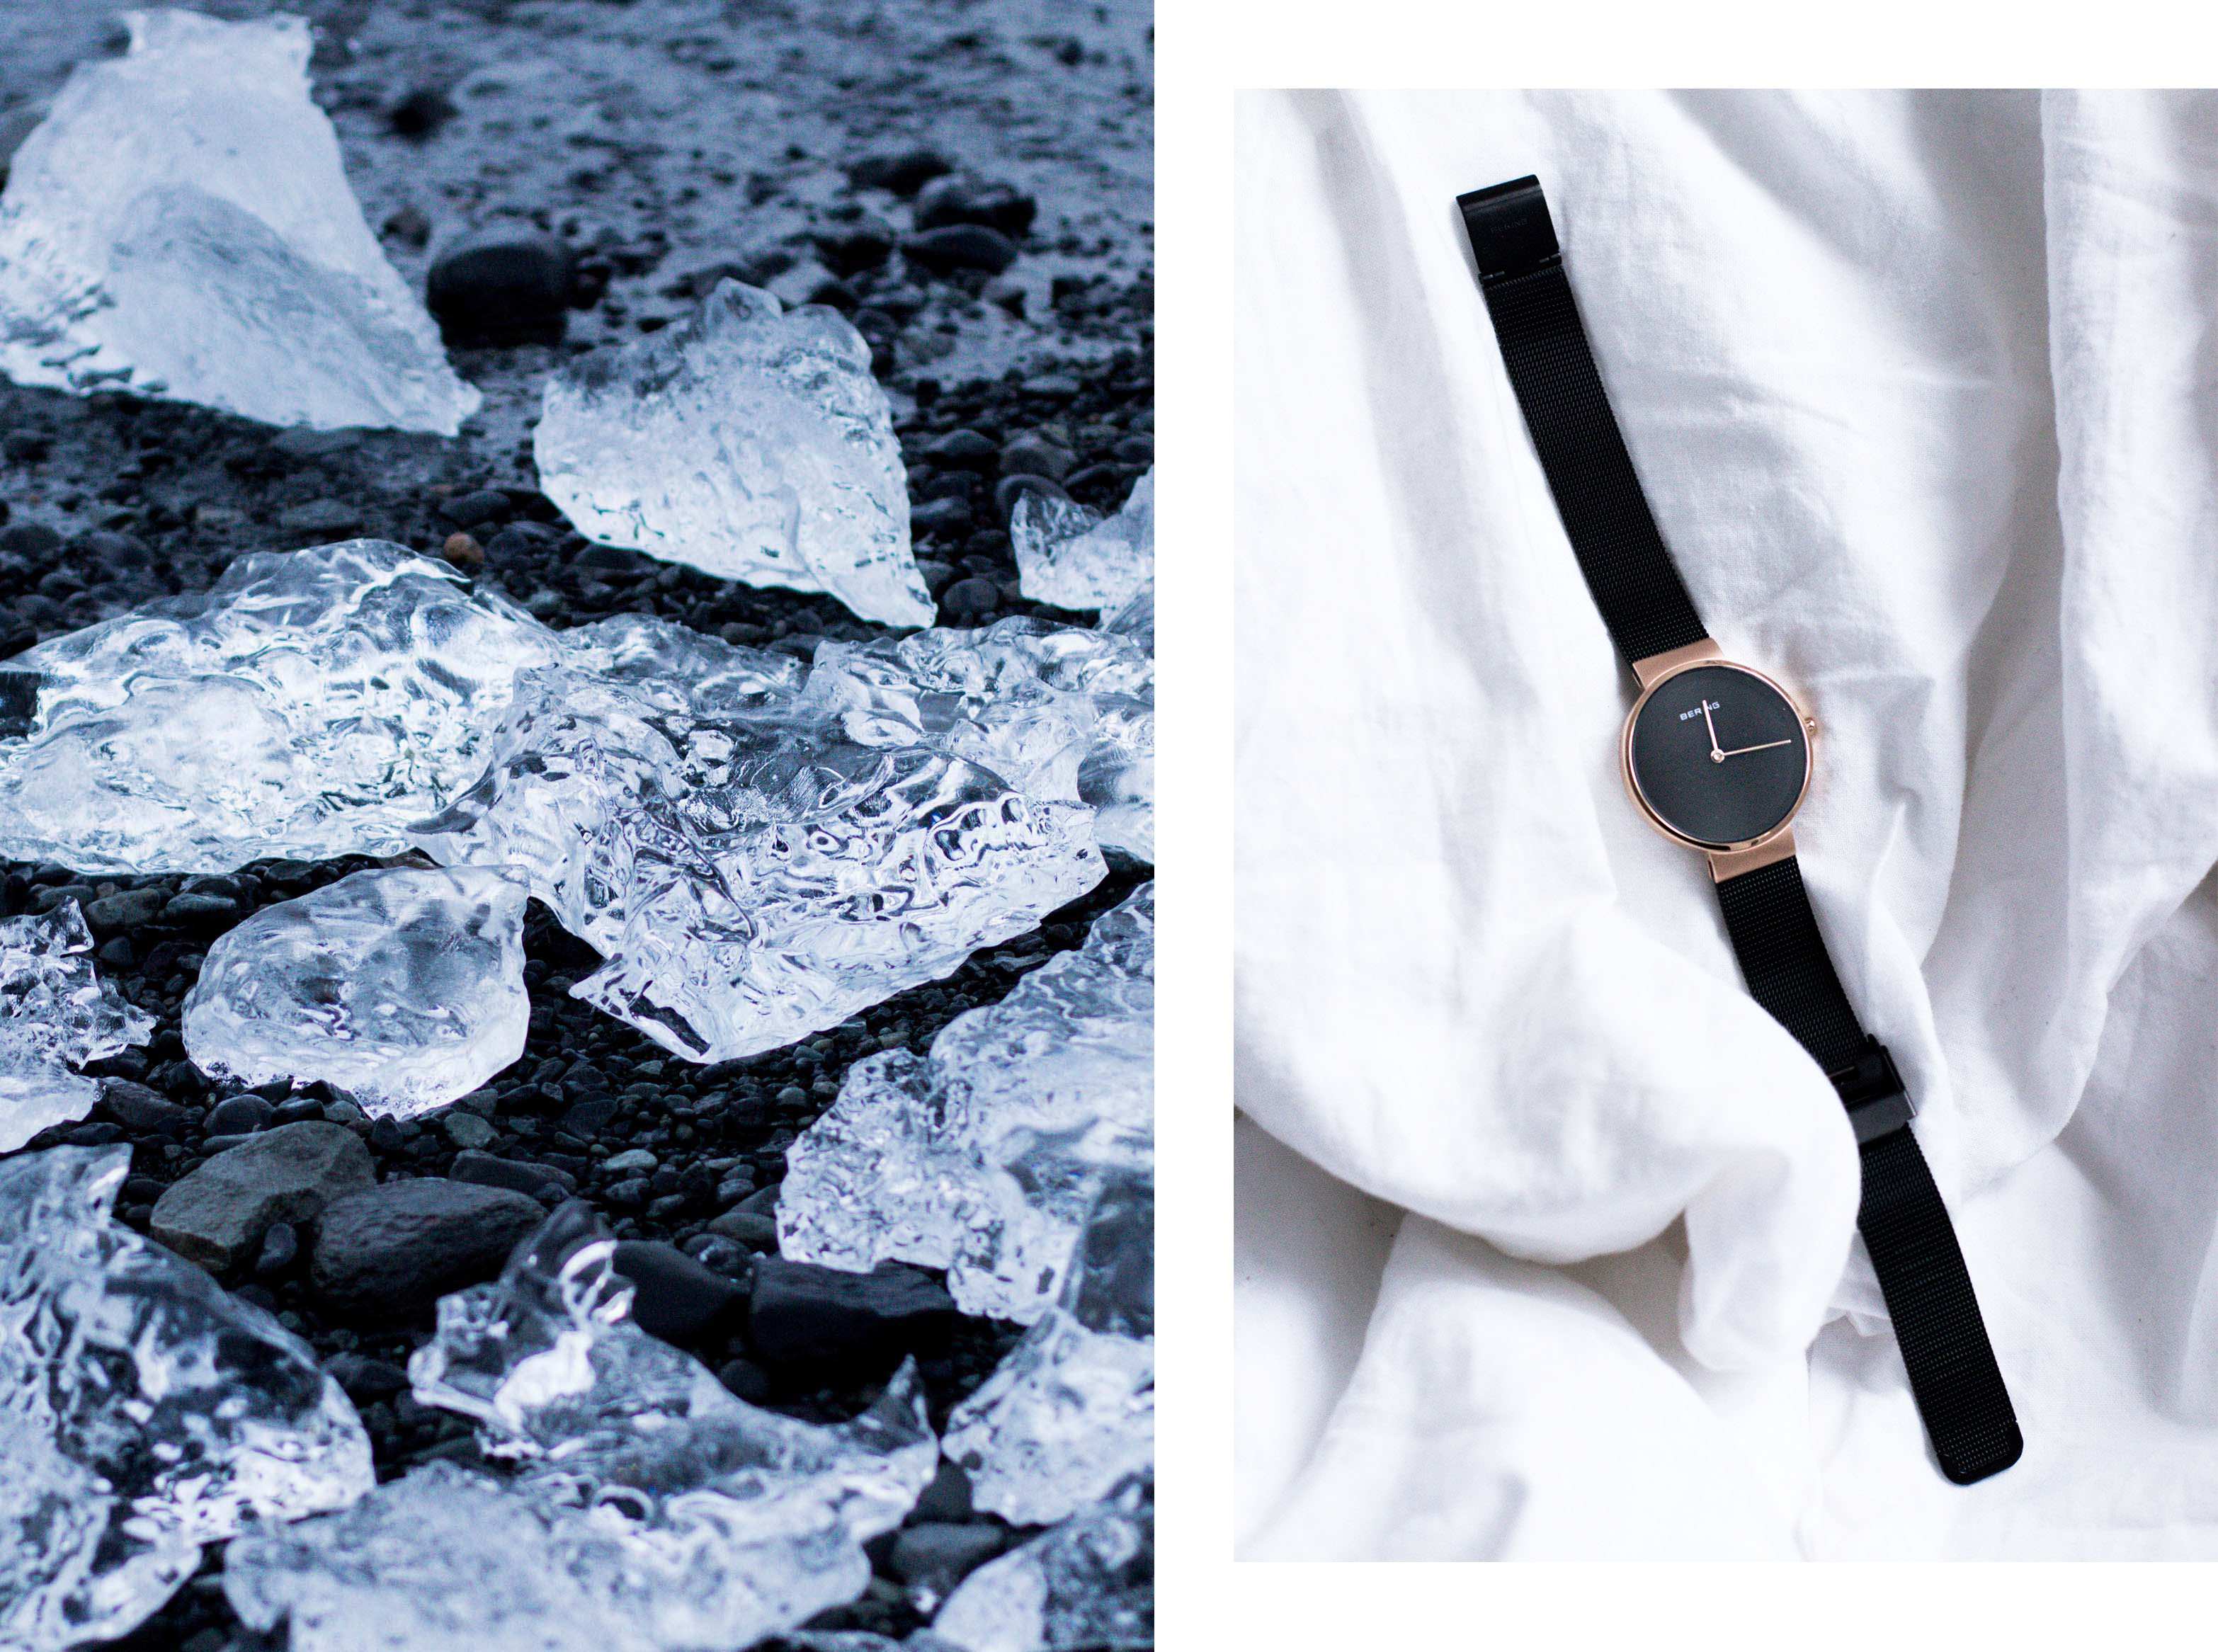 IHEARTALICE.DE – Fashion, Lifestyle & Travel-Diary by Alice M. Huynh from Berlin/Germany: Iceland Travel Diary / BERING Watch & Glacier Ice at Jökusarlon